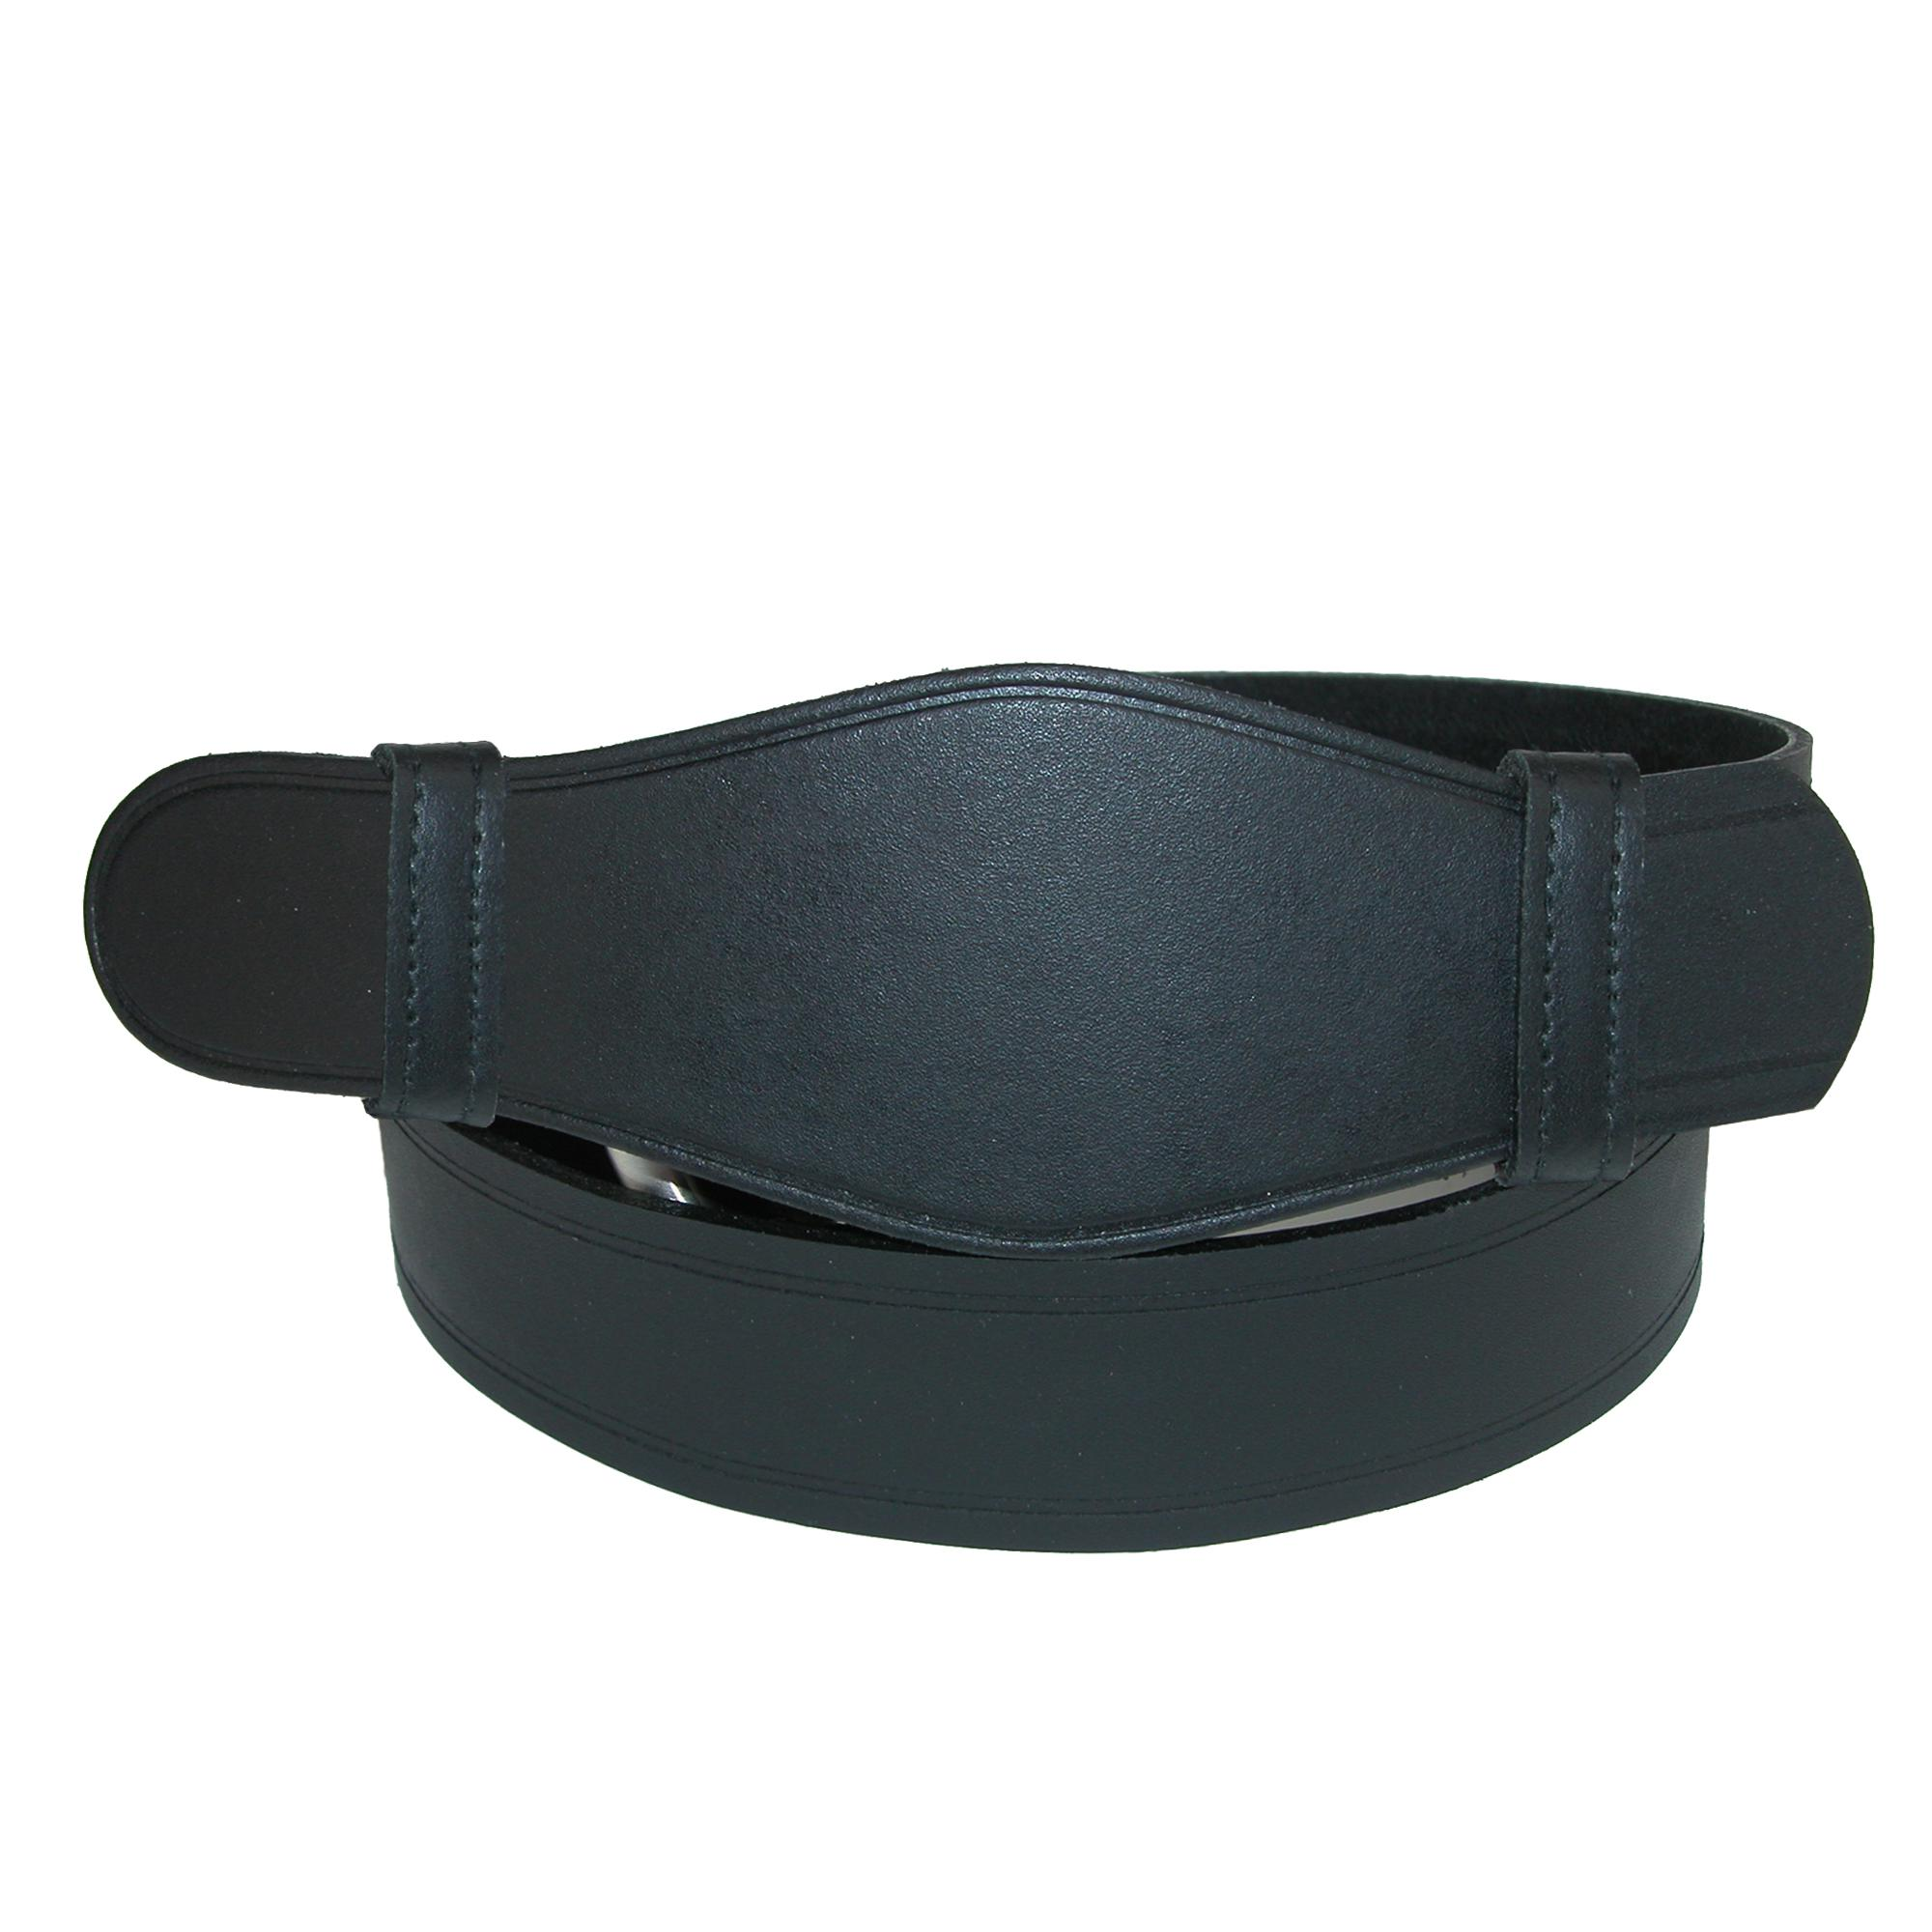 Landes Men's Big & Tall No Scratch Work Belt With Leather Cover